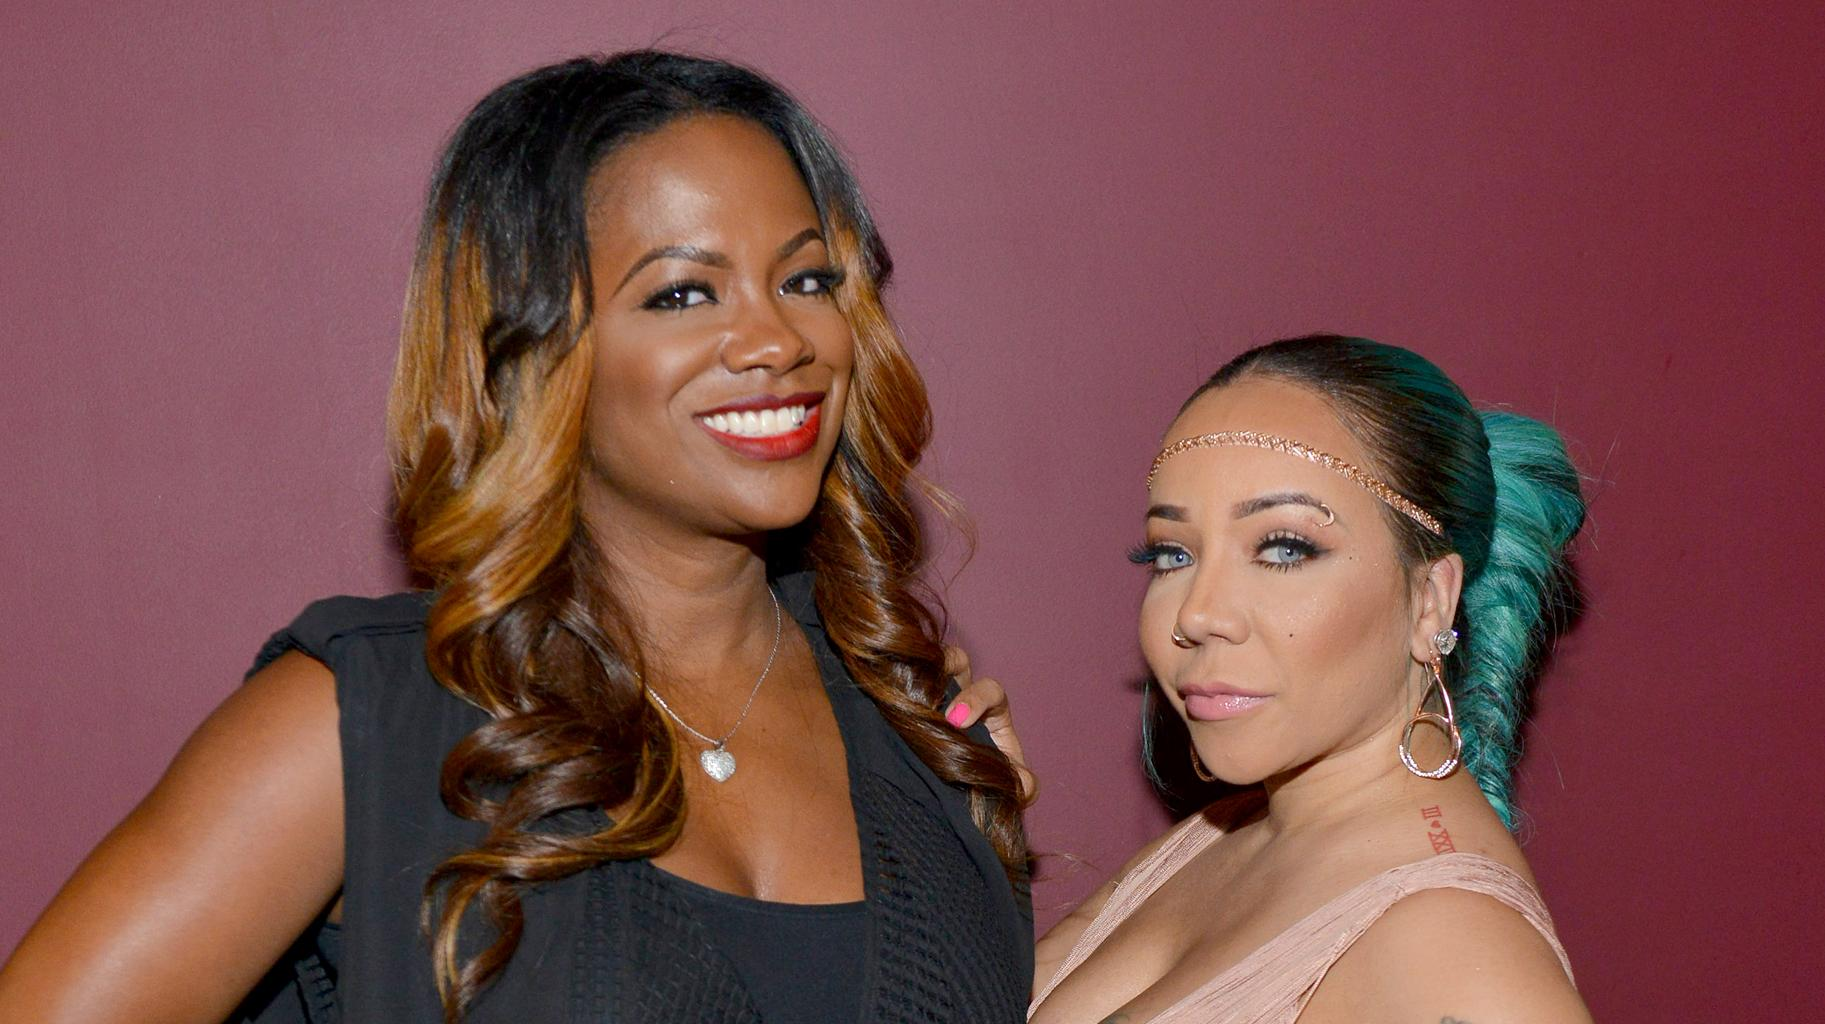 Tiny Harris' Daughter Heiress And Kandi Burruss' Son Ace Hug In The Cutest Video Ever!